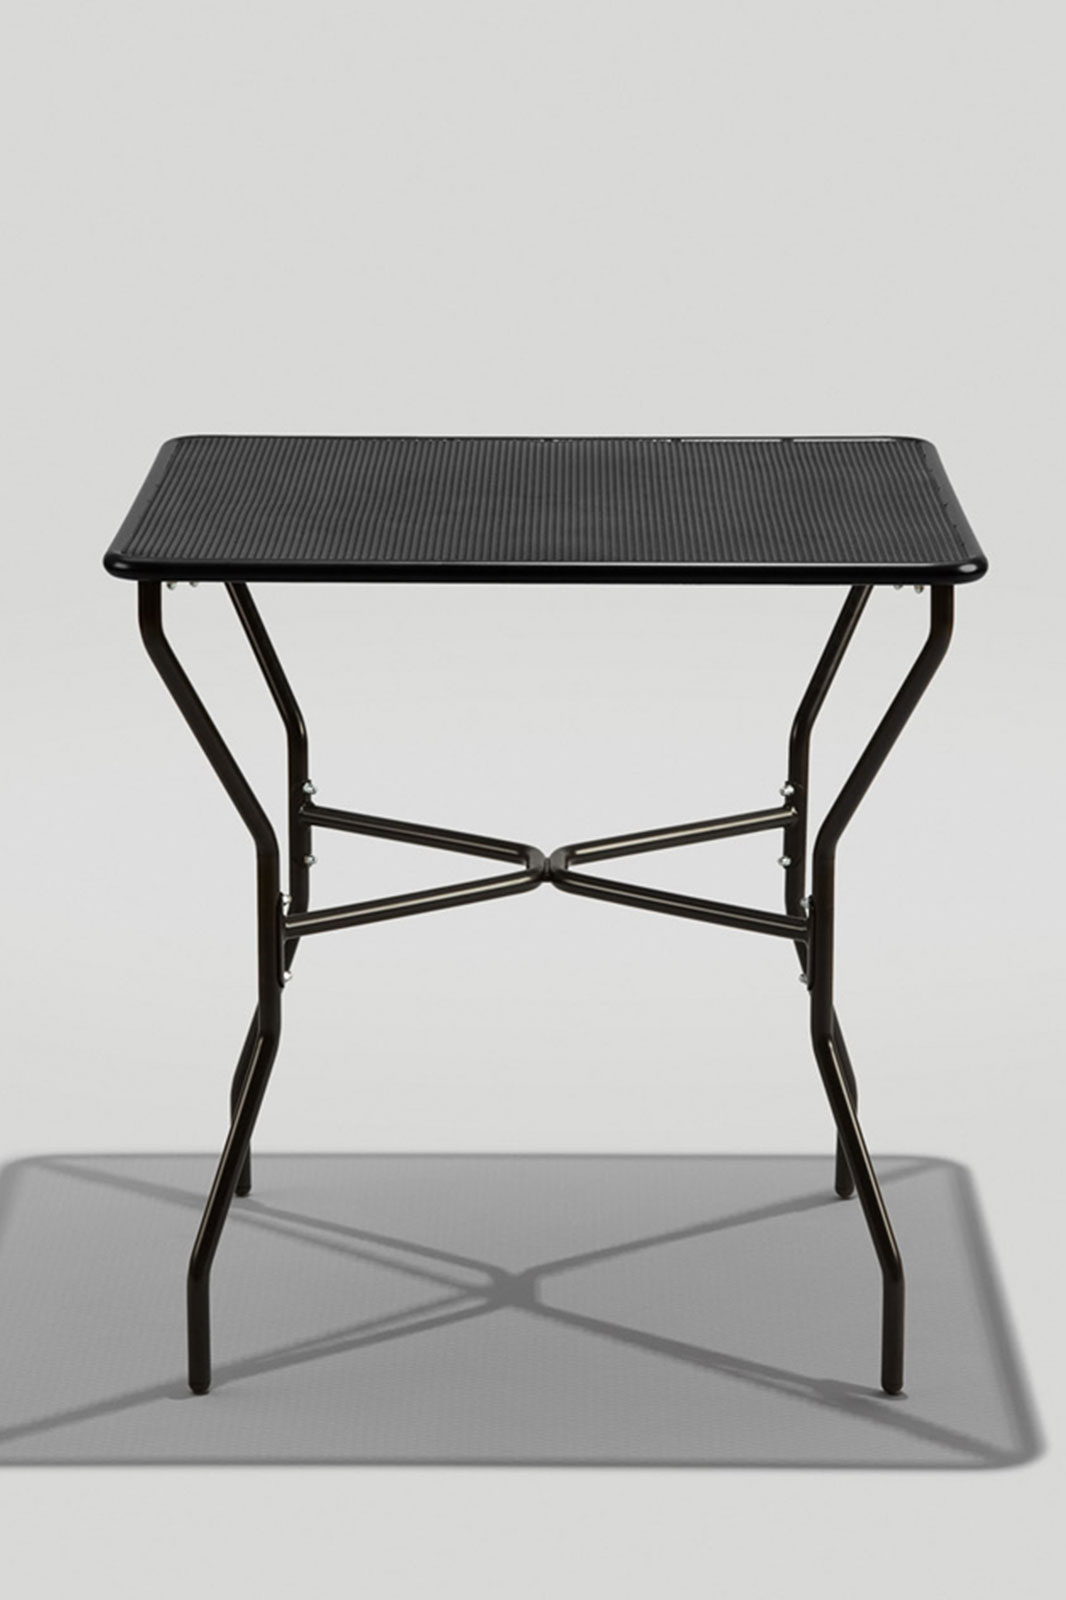 Square Opla Outdoor Table